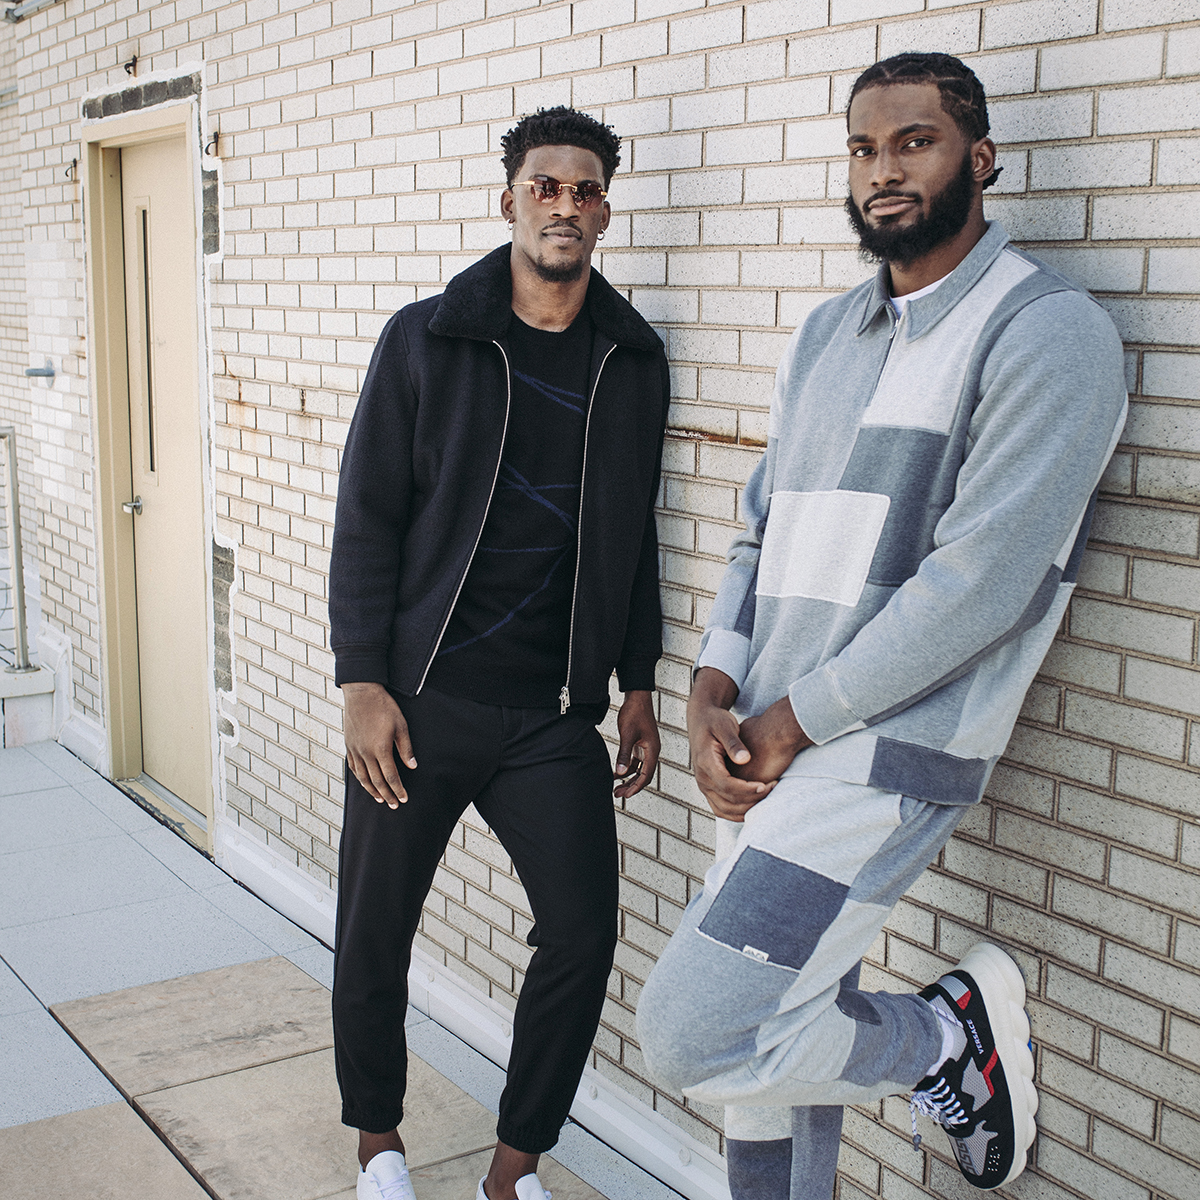 In Conversation With Jimmy Butler And Justise Winslow By Jimmy Butler And Justise Winslow